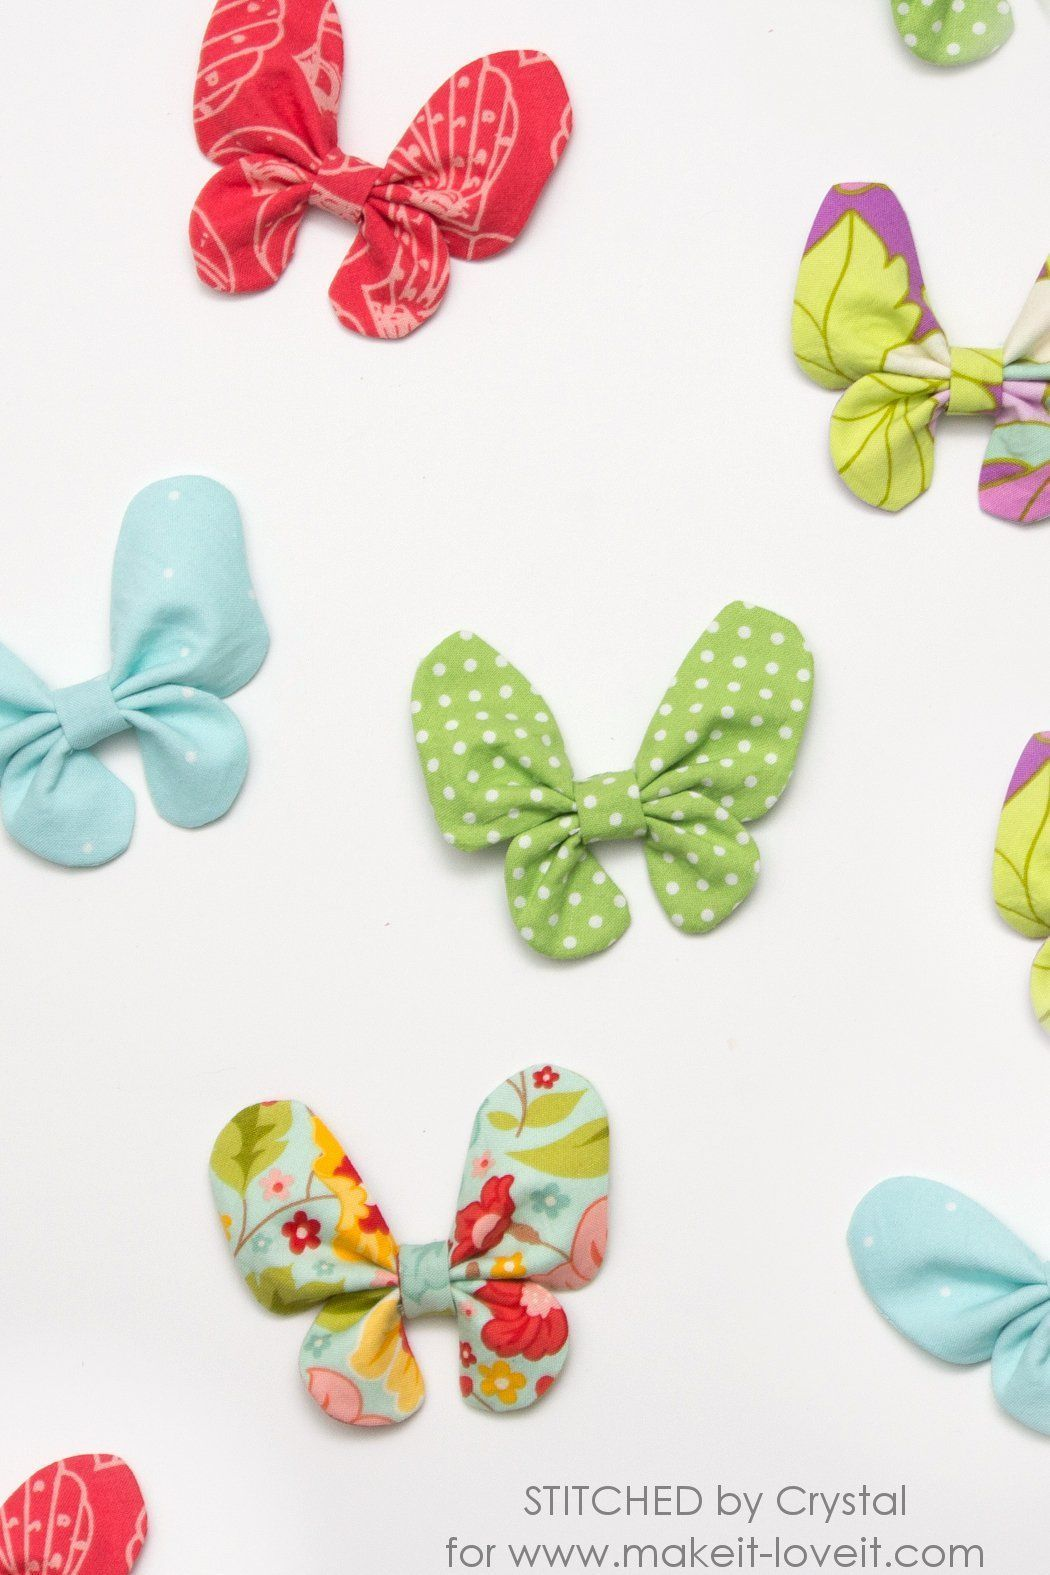 Butterfly Hair Bow Tutorial #fabricbowtutorial A tutorial to sew a butterfly hair bow, a perfect hair accessory for spring! This project is an easy sew and can be made with fabric scraps! #fabricbowtutorial